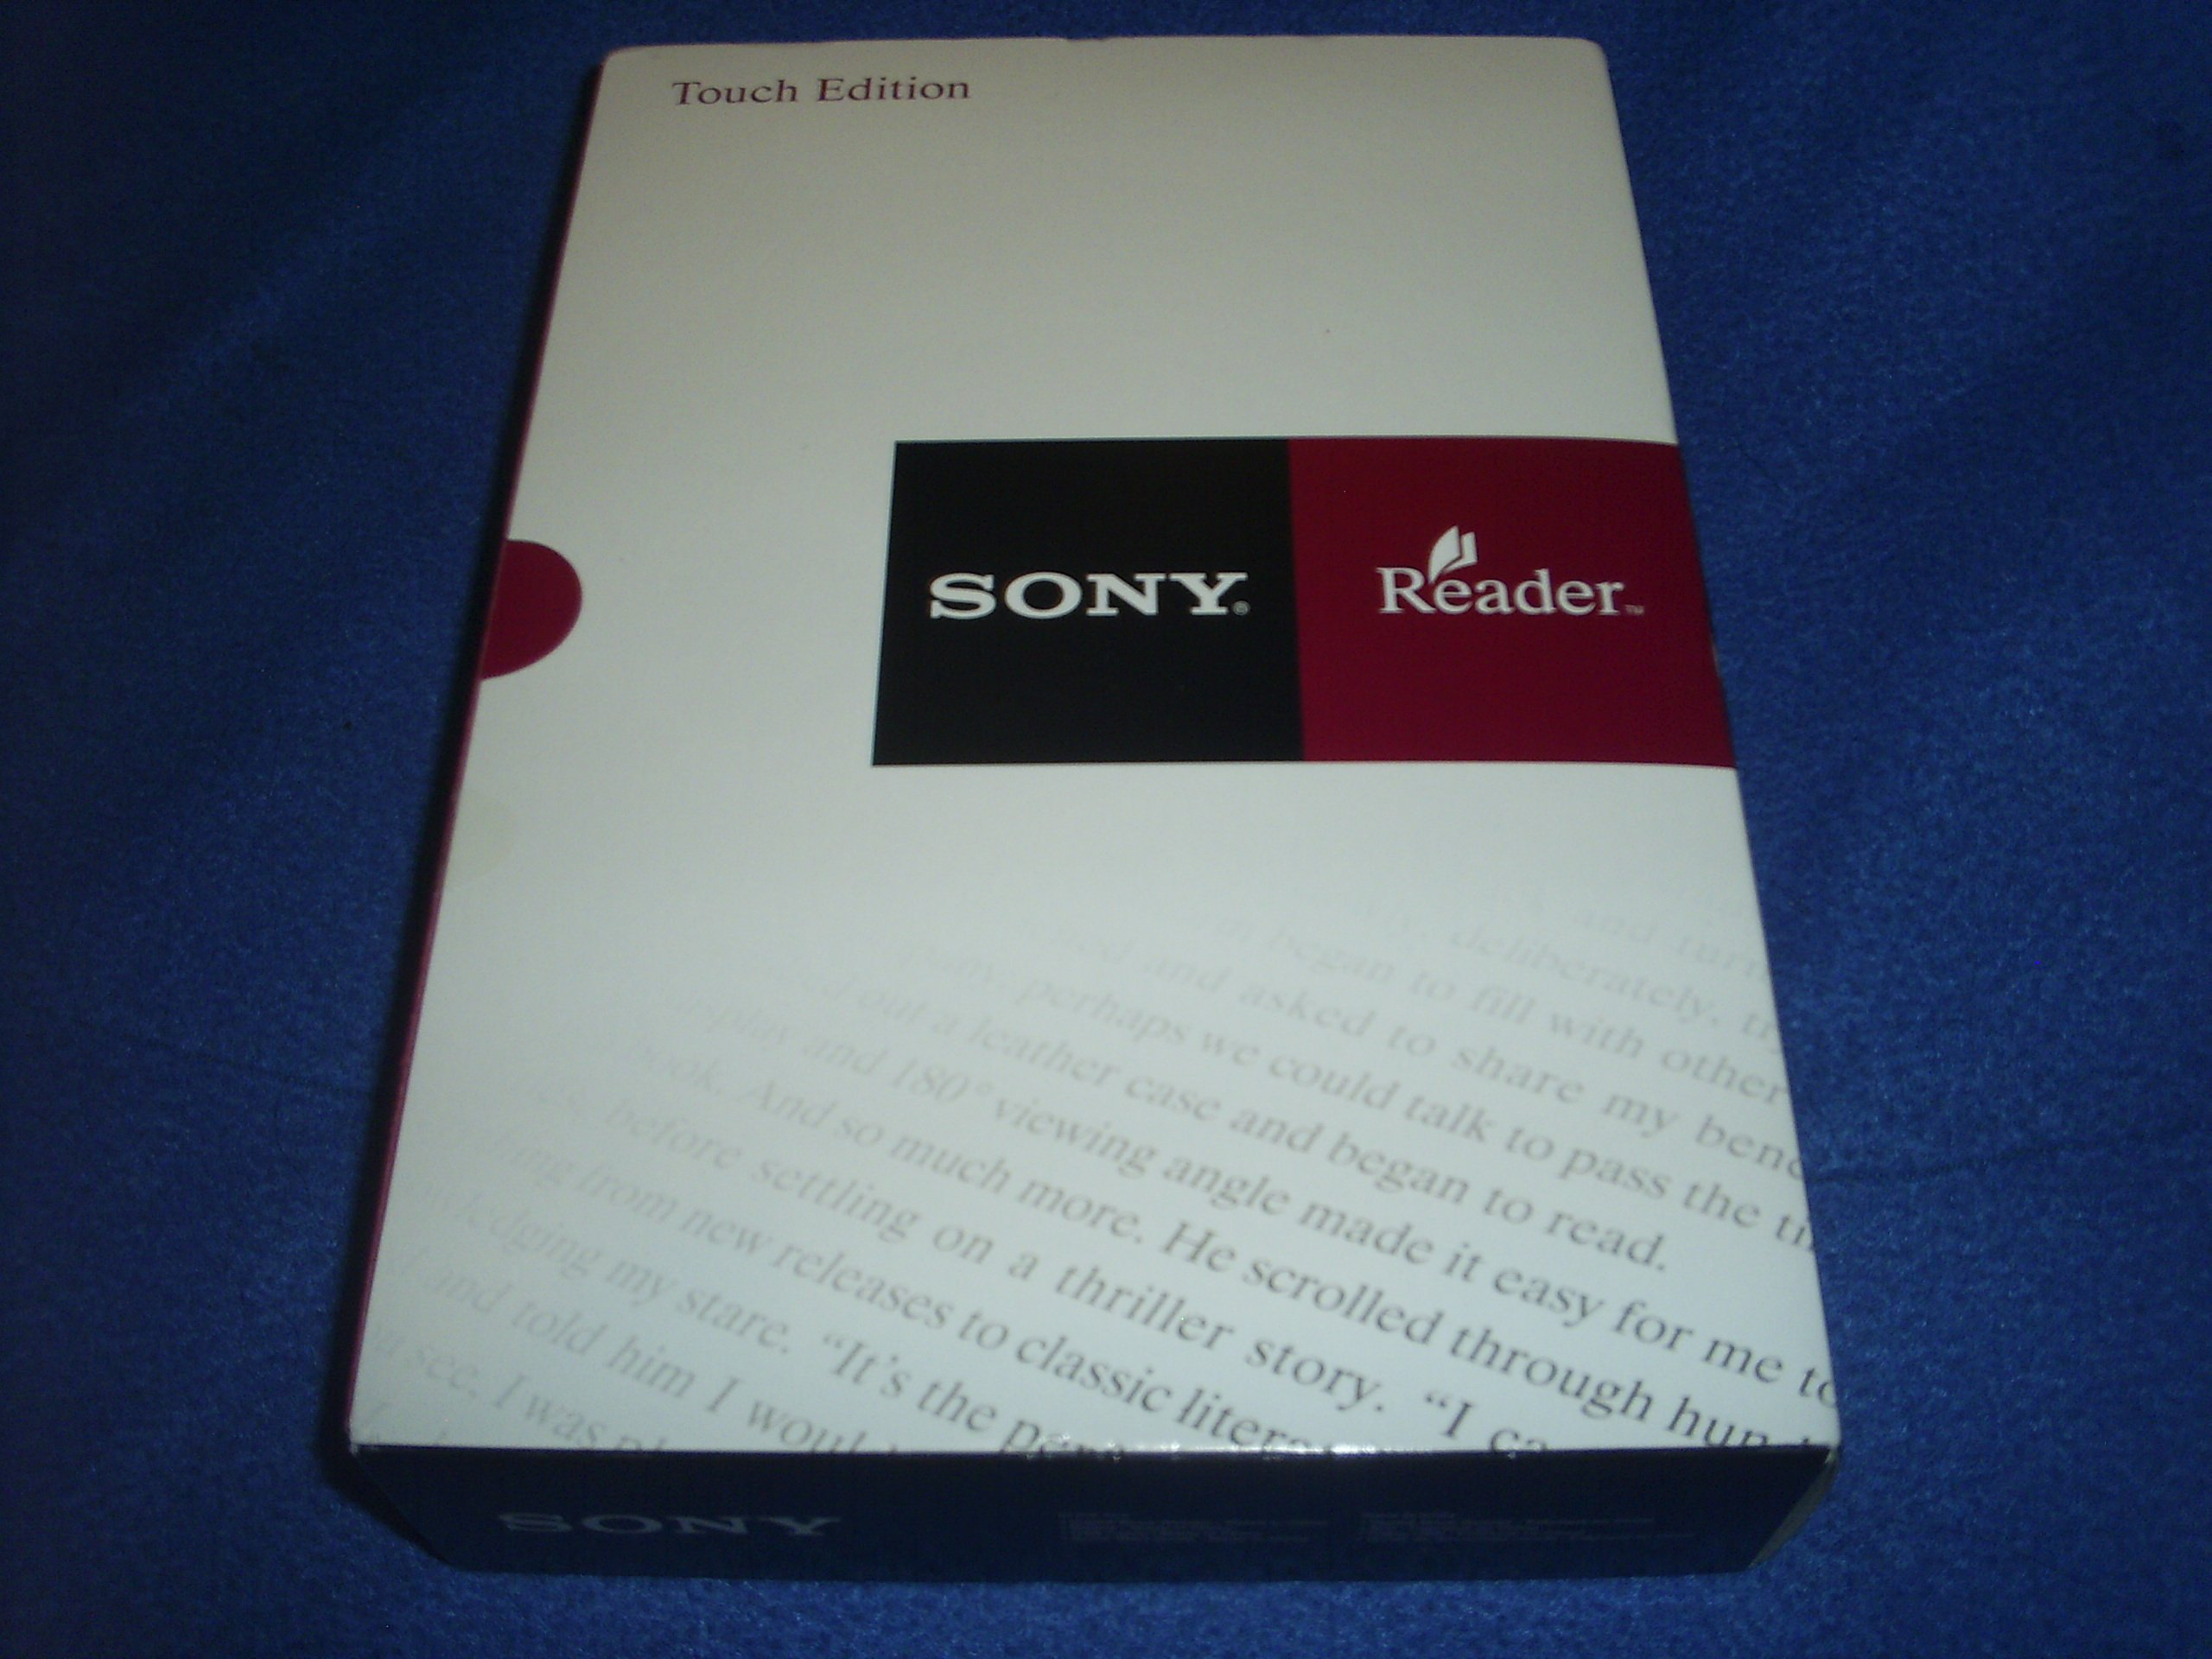 Sony PRS-600BC Touch Edition E-Book Reader by Sony